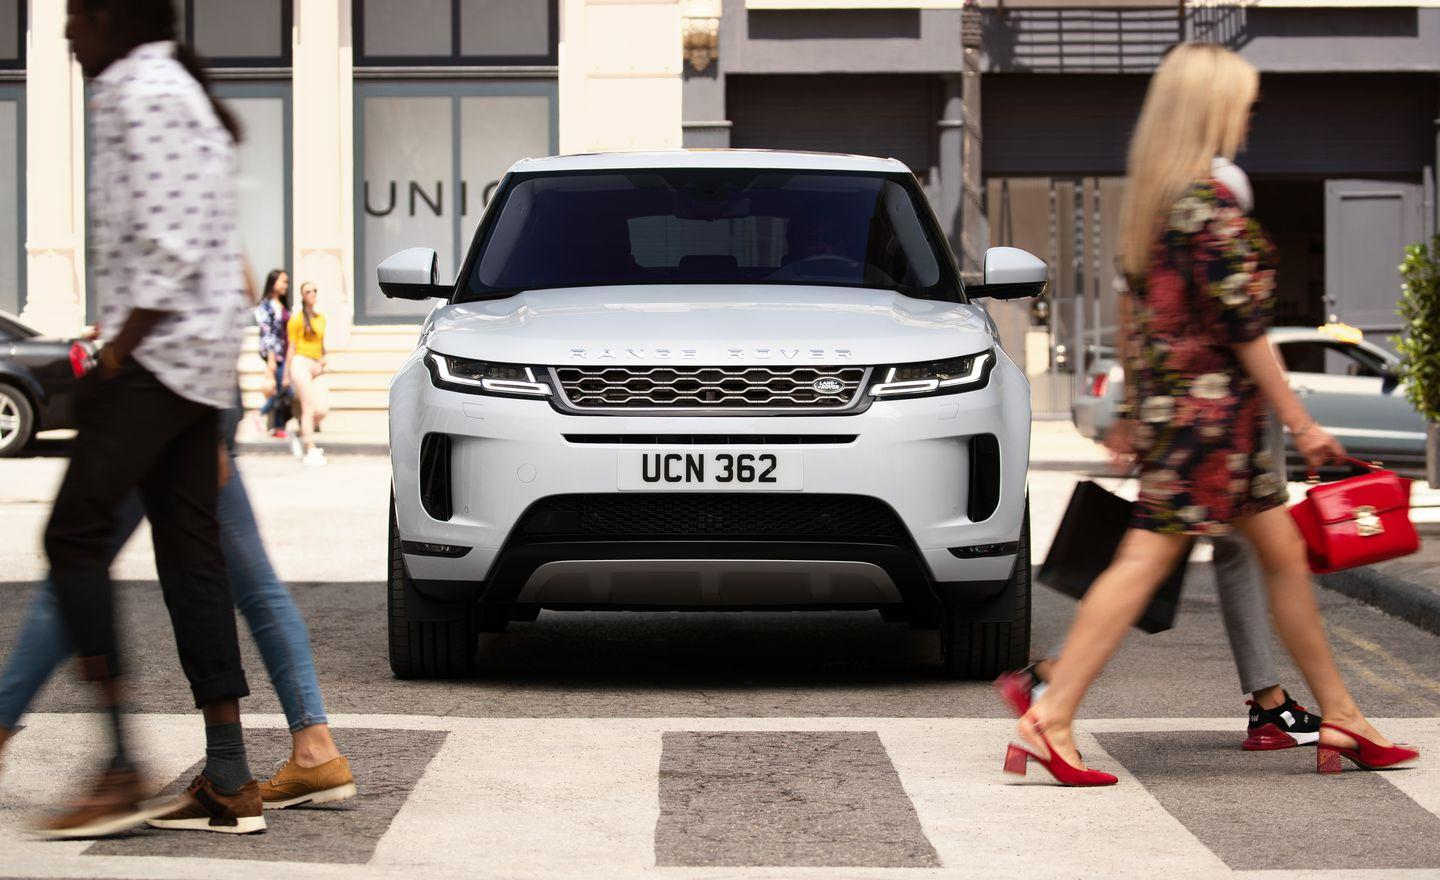 See Photos of the All-New 2020 Range Rover Evoque